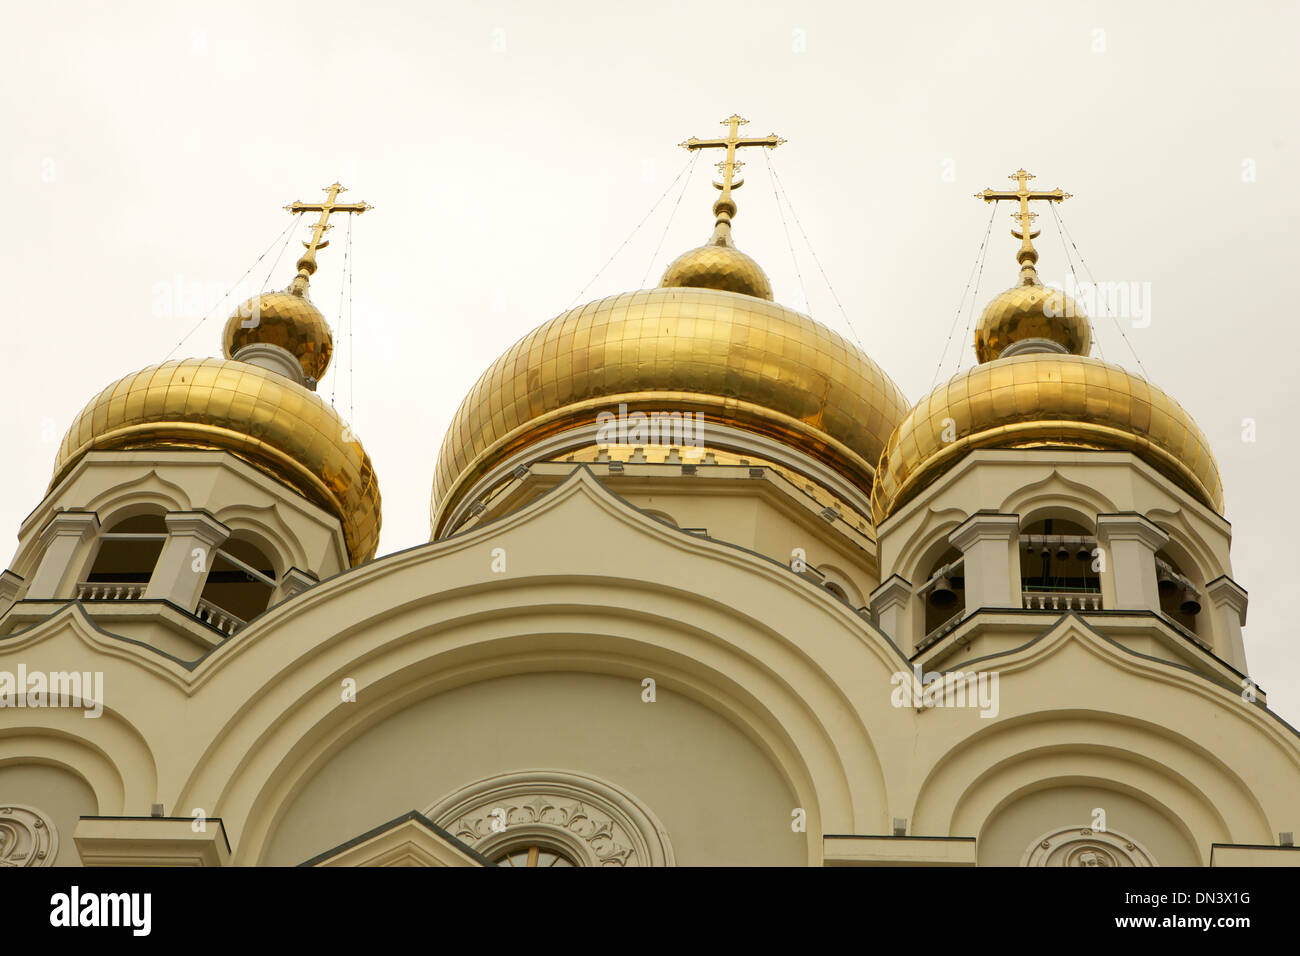 Transfiguration Cathedral, Khabarovsk, Russia - Stock Image